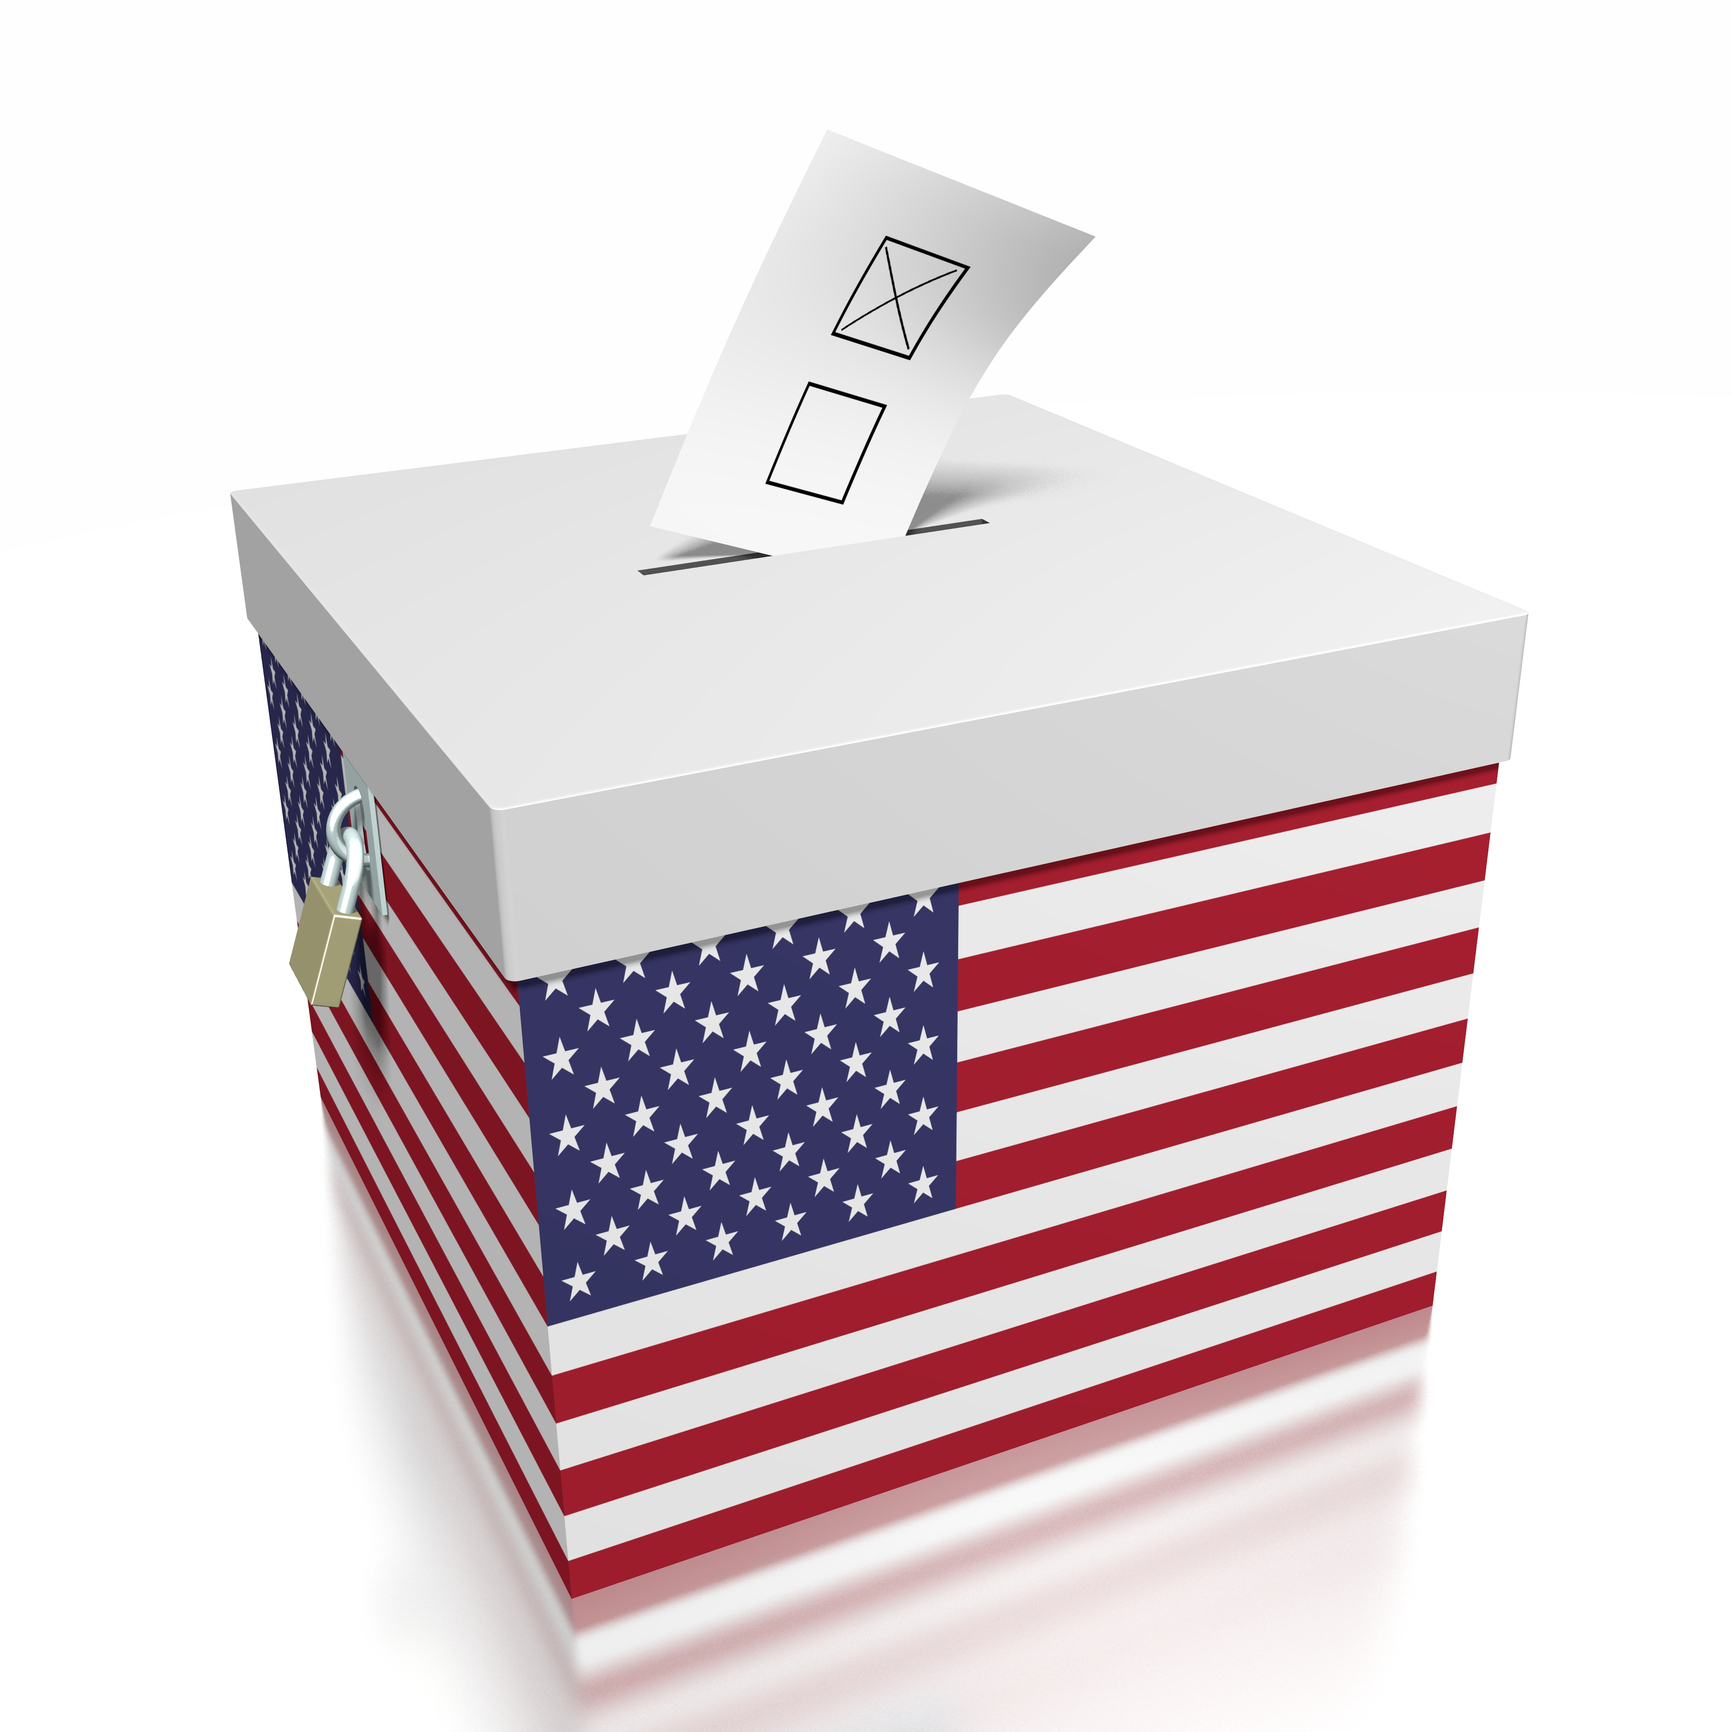 3D ballot box with a flag - great for topics like ellection/ voting etc.